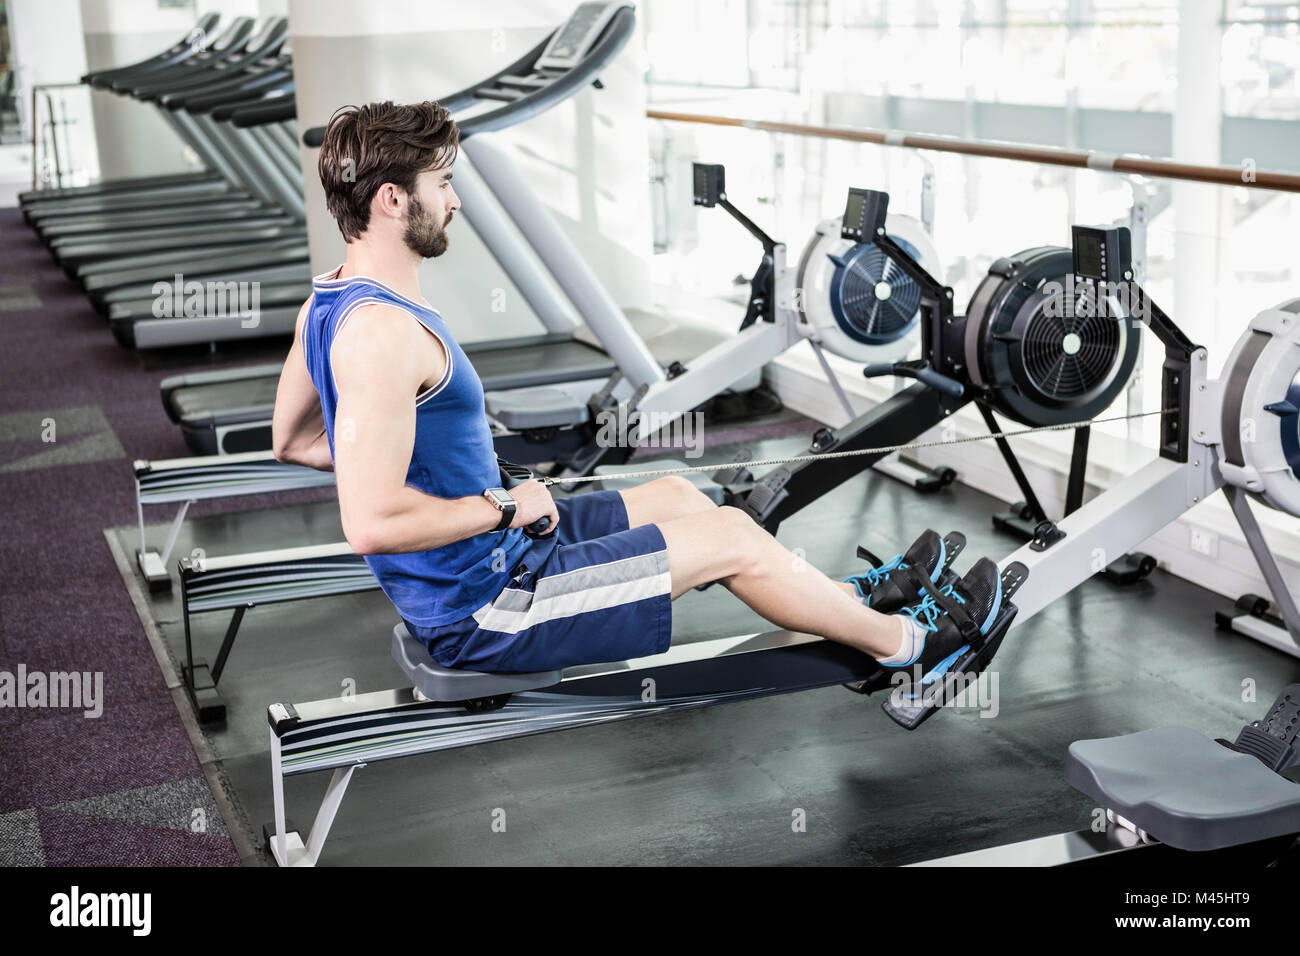 Handsome man doing exercise on drawing machine - Stock Image